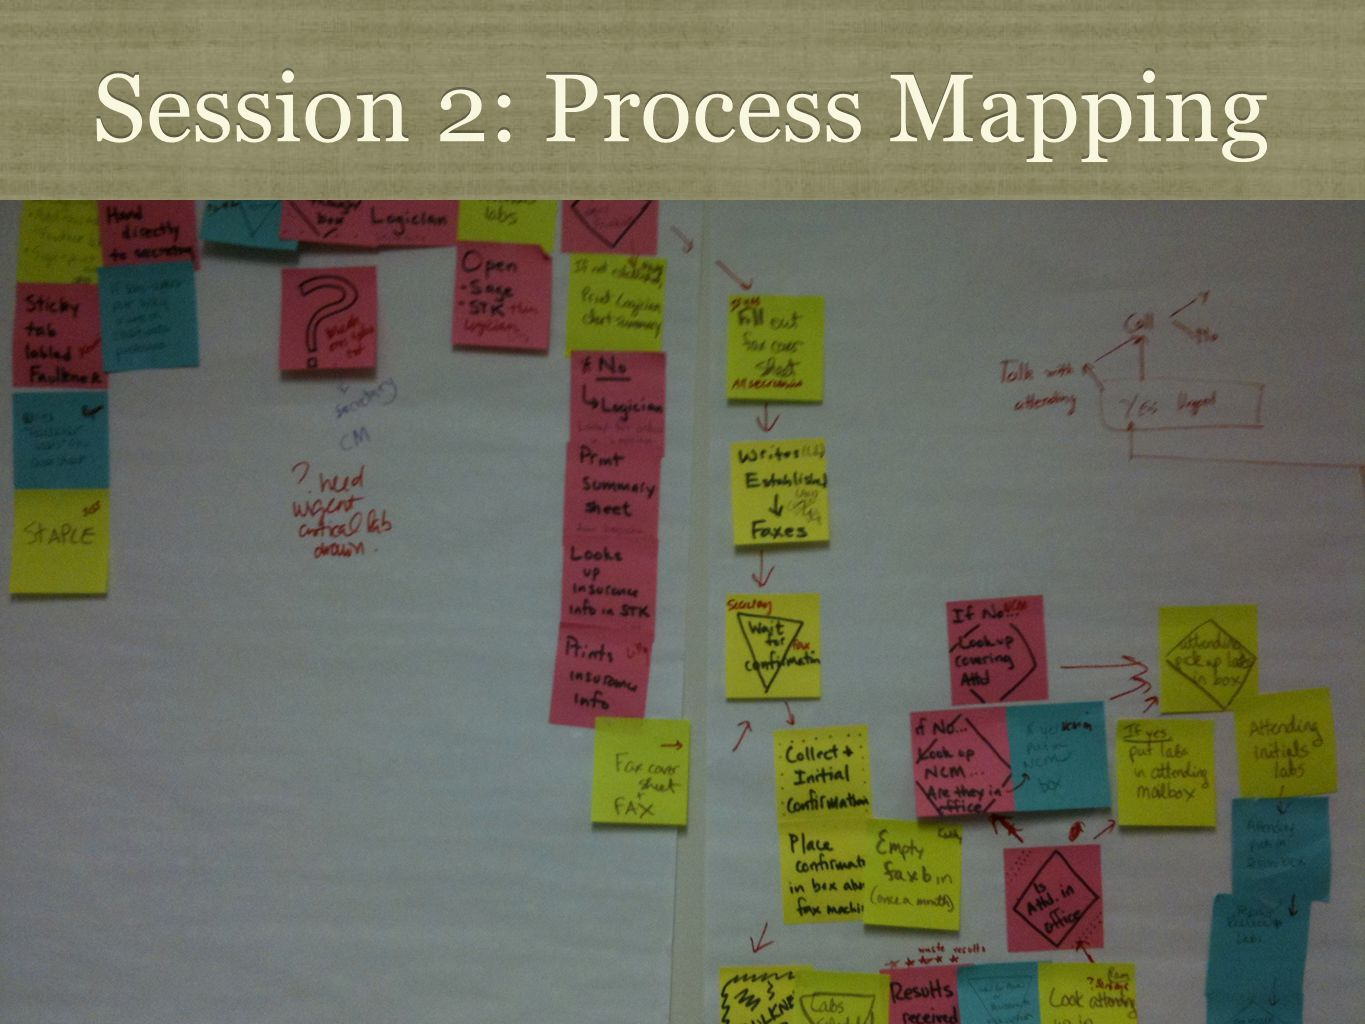 Session 2: Process Mapping